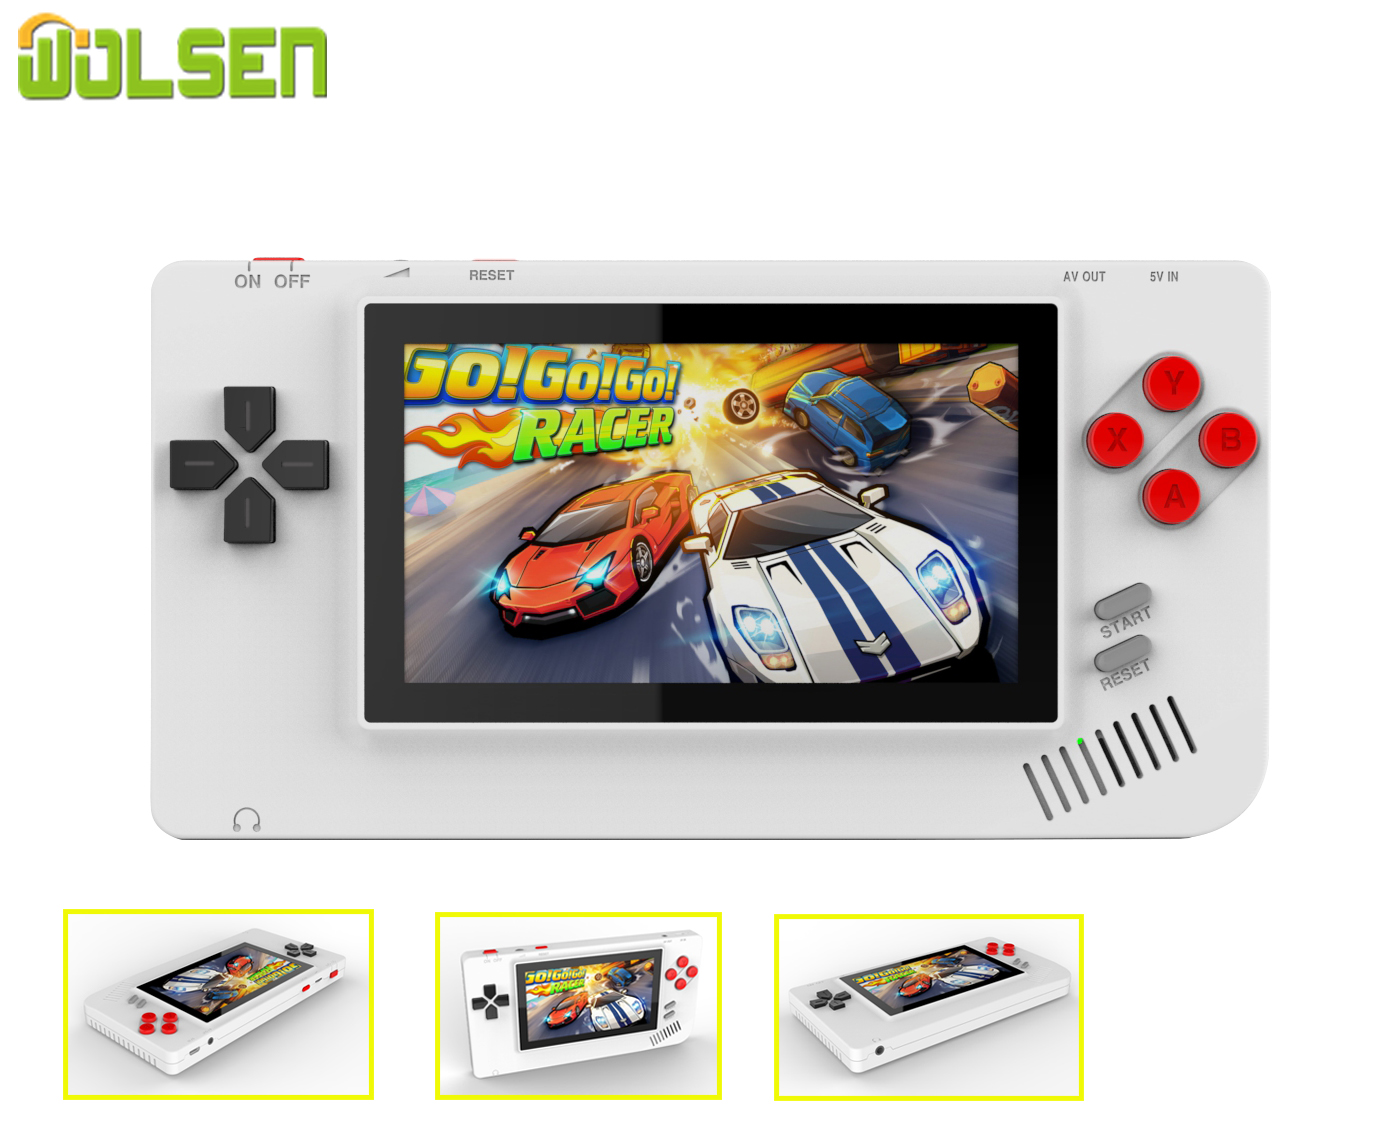 2020 NEW 8 Bit Portable Handheld Game Console 4.3 inch Pocket Max Video Game Built in 228 Funny Games image